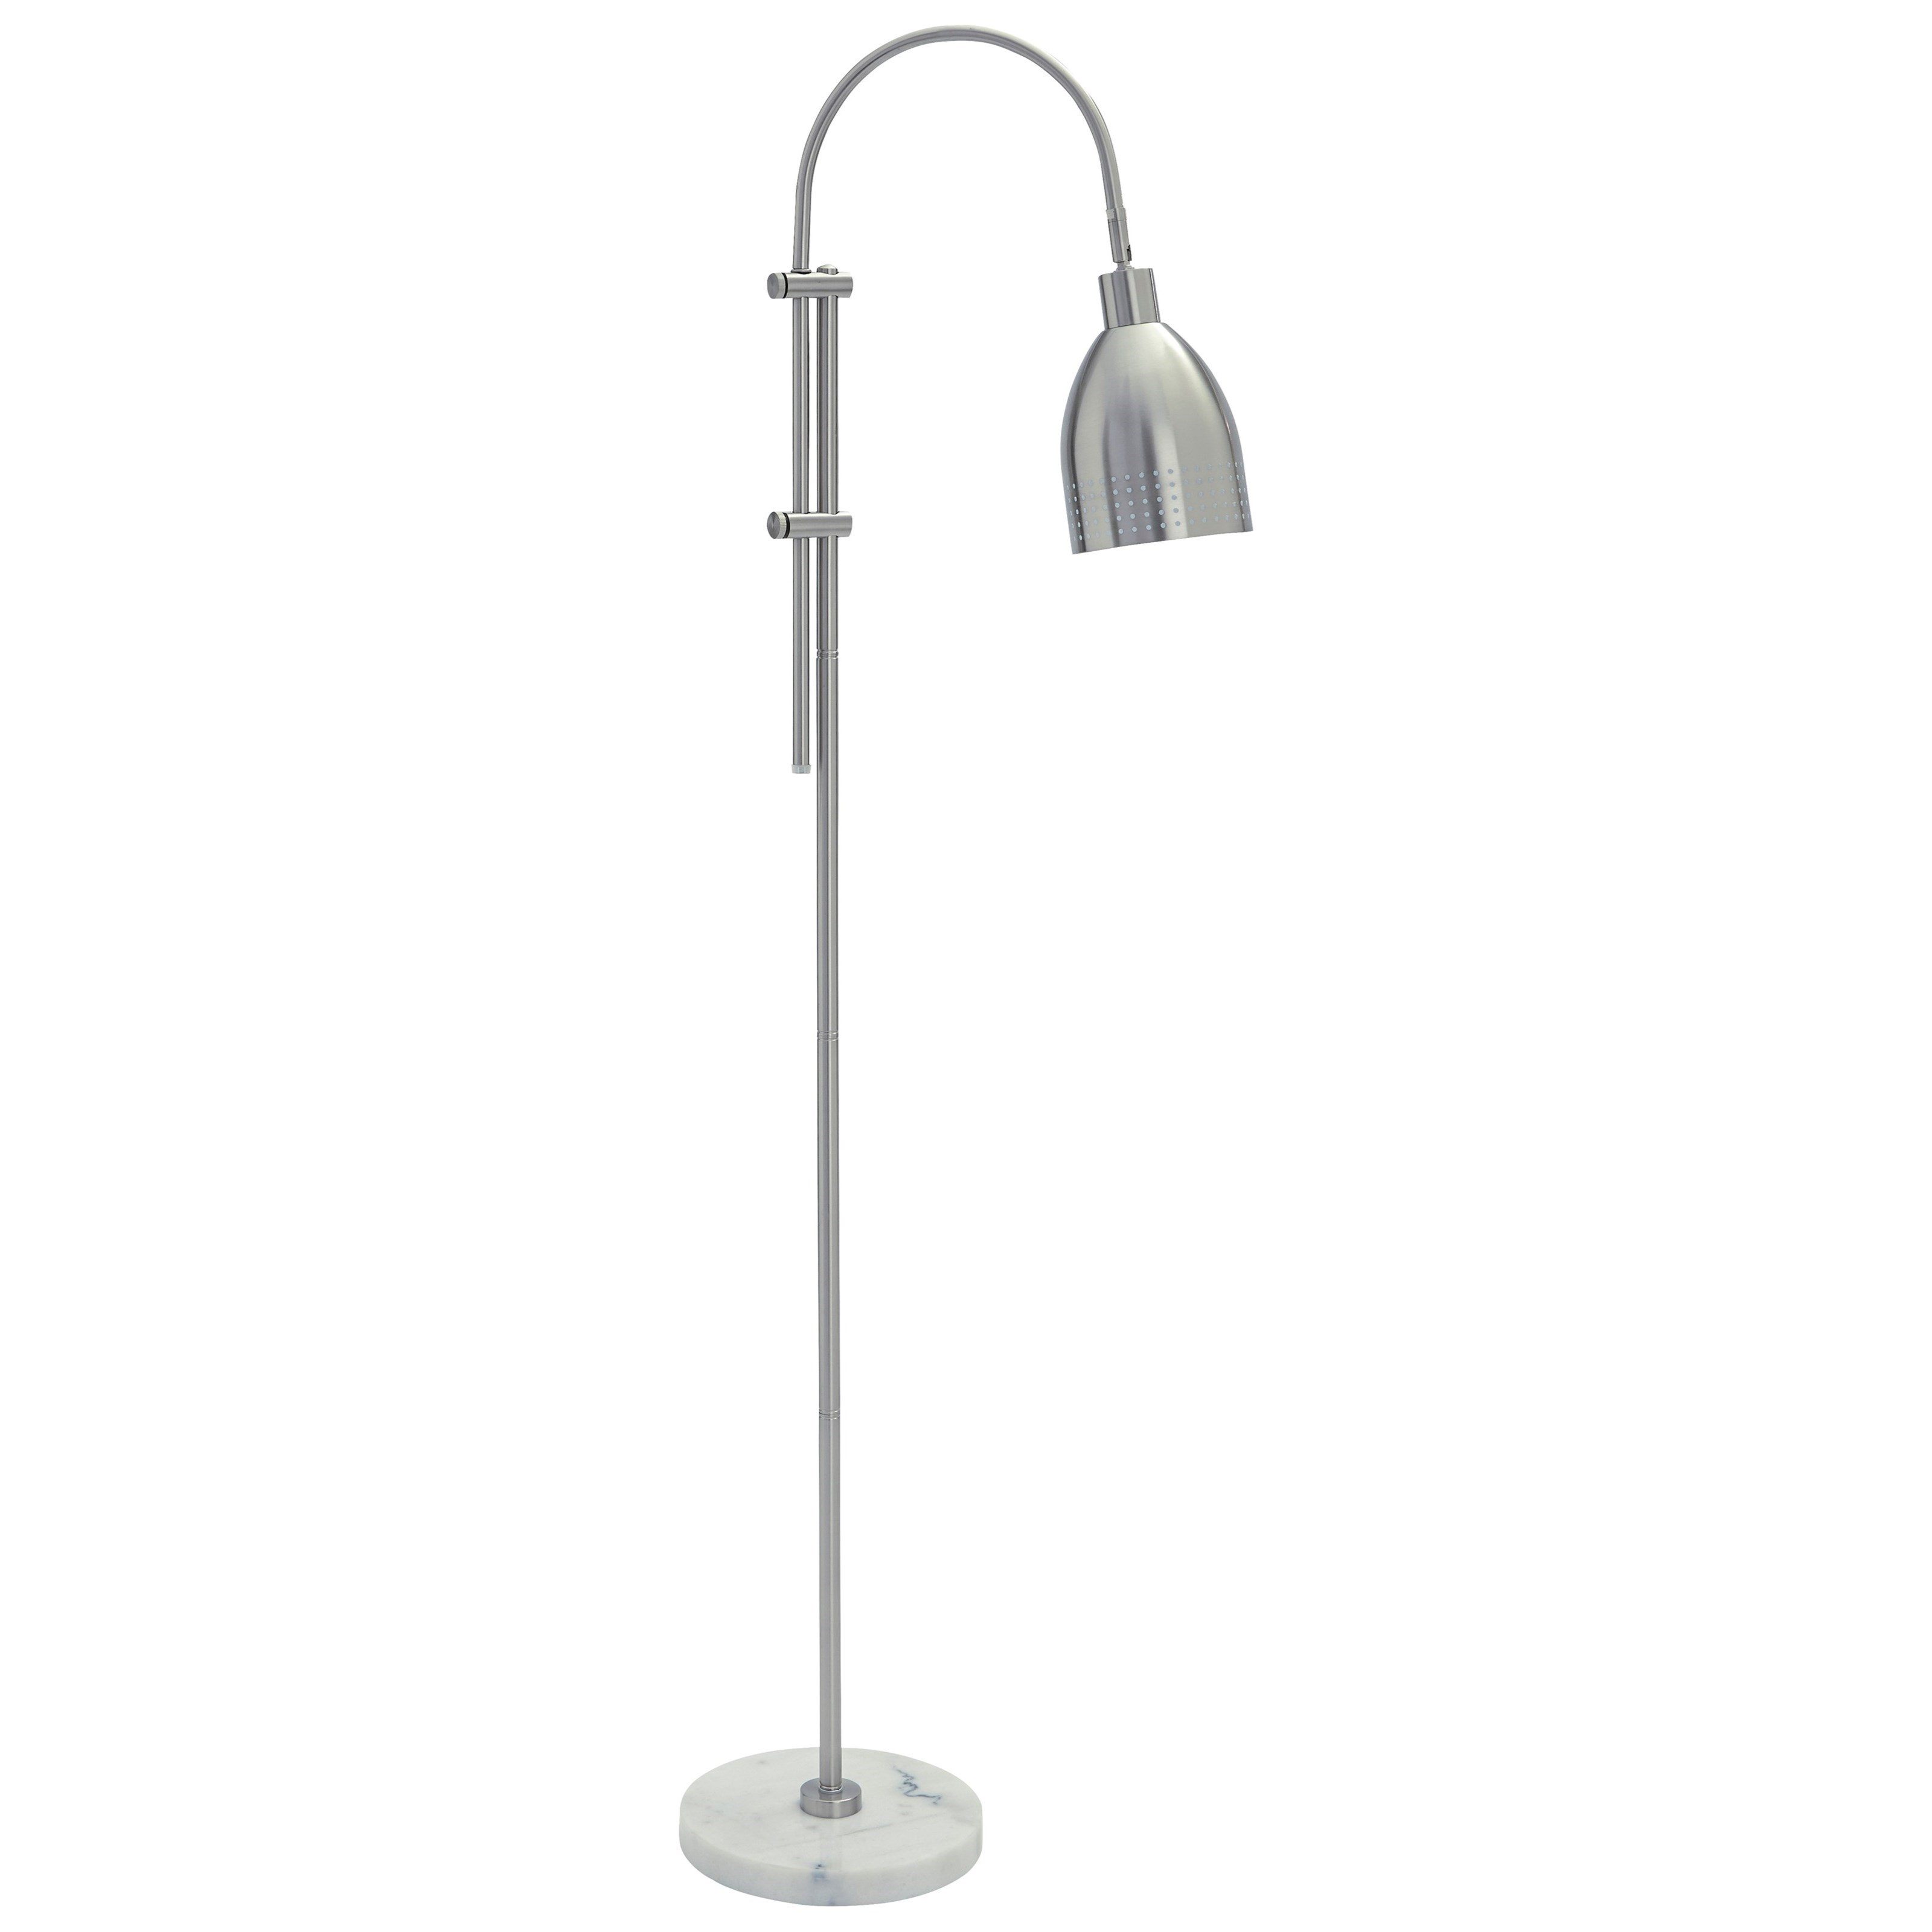 Signature Design by Ashley Lamps - Contemporary Asabi Silver Finish/Marble Metal Floor Lamp - Item Number: L734191